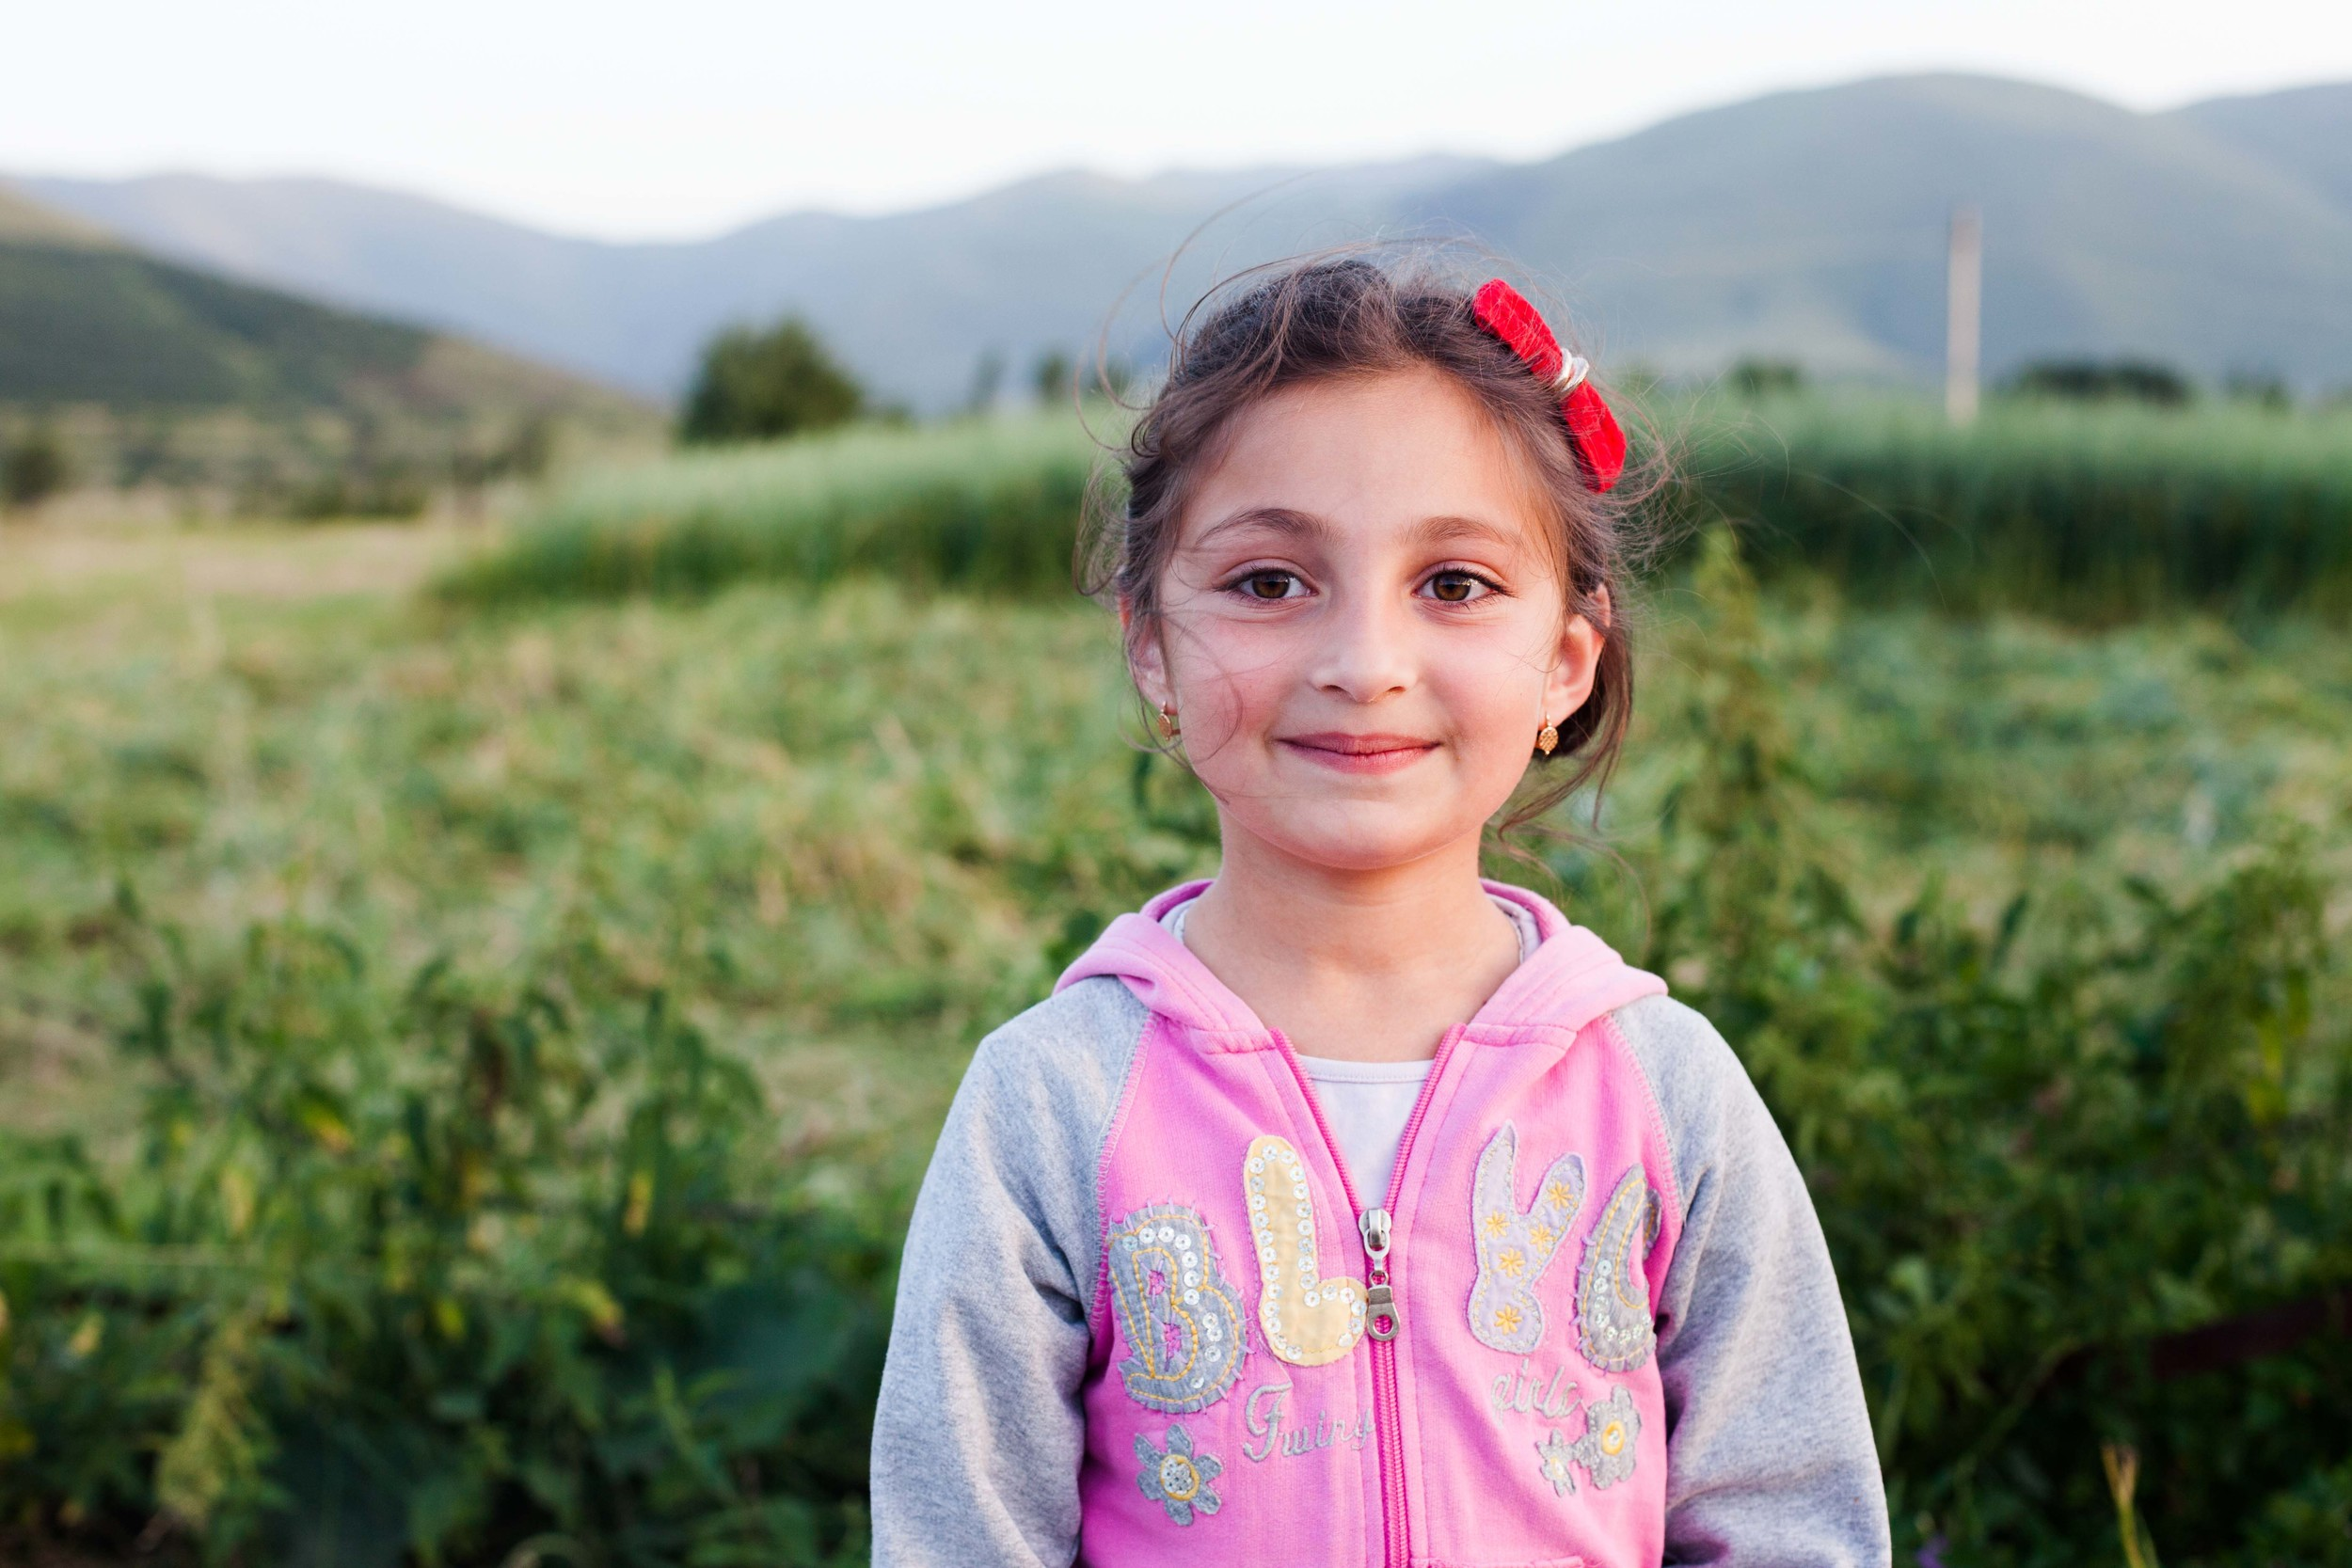 Karinka, a young Armenian, poses for a portrait nearby her home in Spitak. She is praised by her mother for her lady-like qualities.